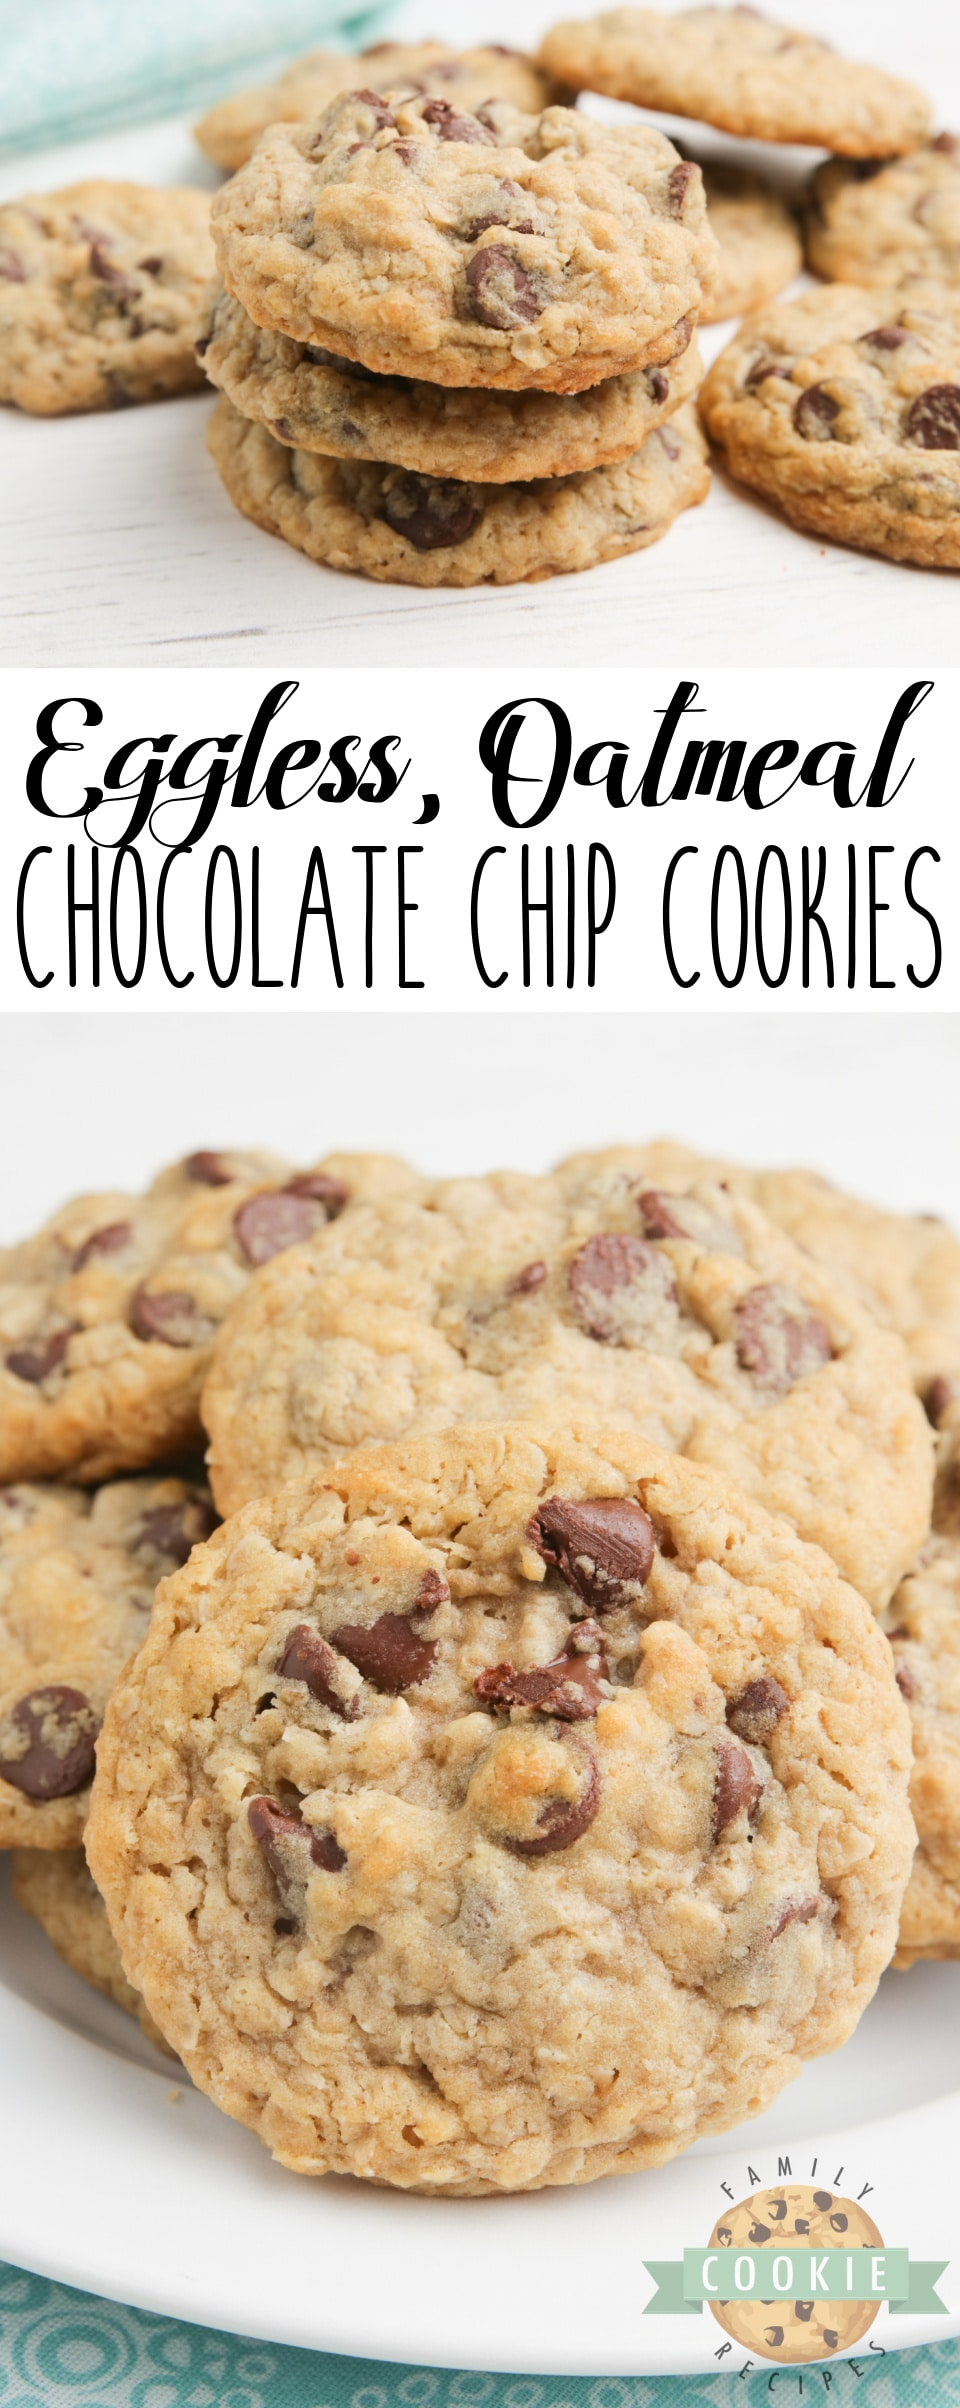 Eggless Oatmeal Chocolate Chip Cookies are soft, chewy and have the perfect consistency - you can't even tell there aren't any eggs in the recipe! Best eggless cookie recipe ever! via @buttergirls